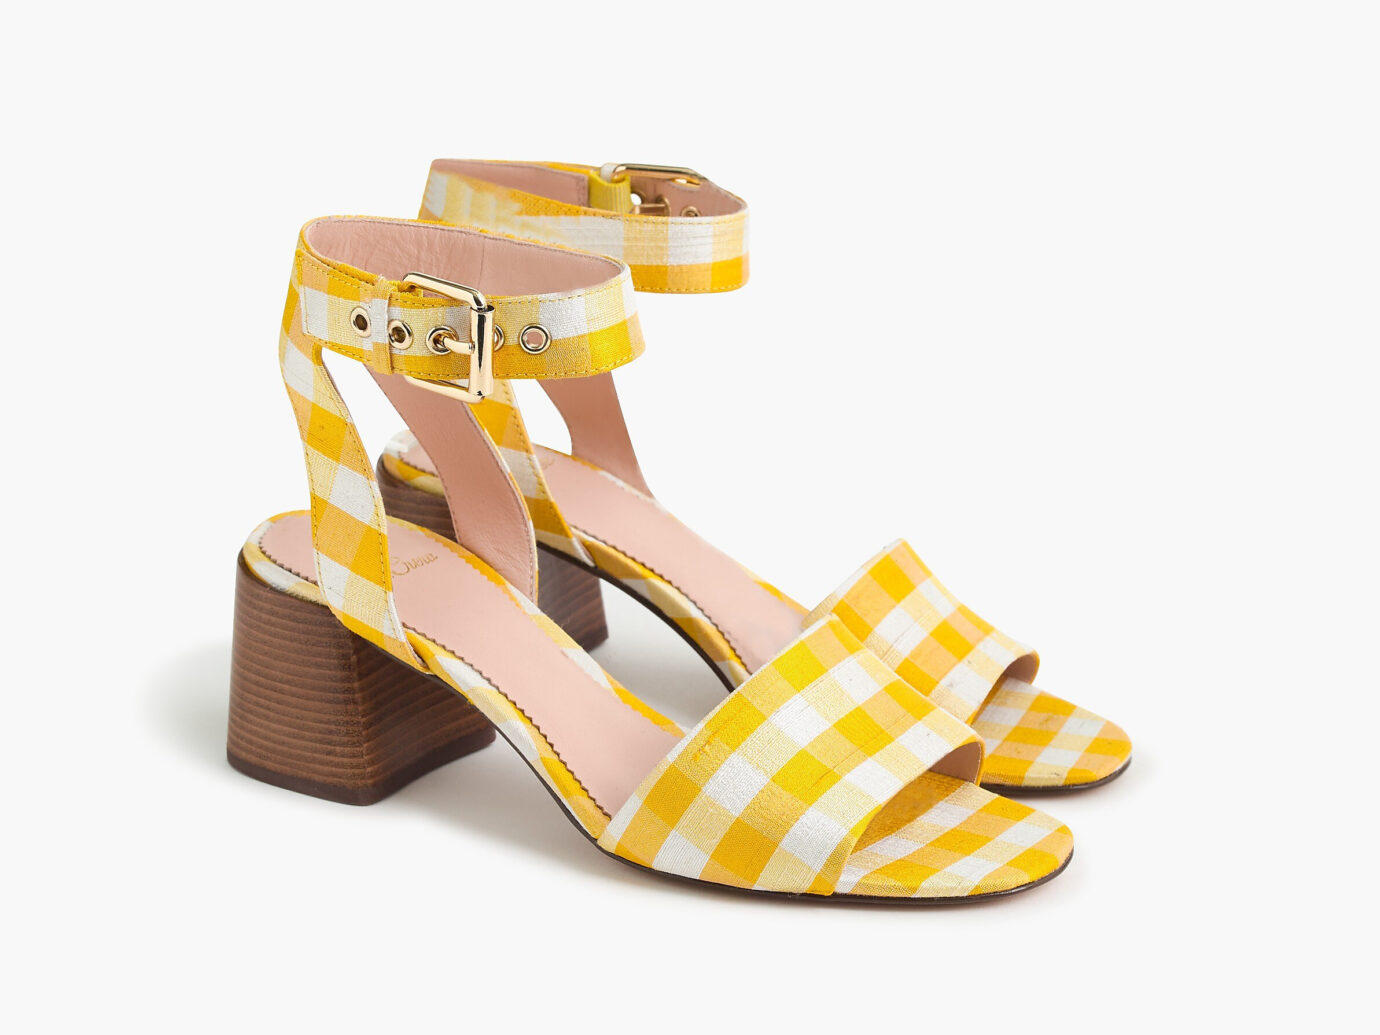 J.Crew Penny Ankle-Strap gingham Sandals sale